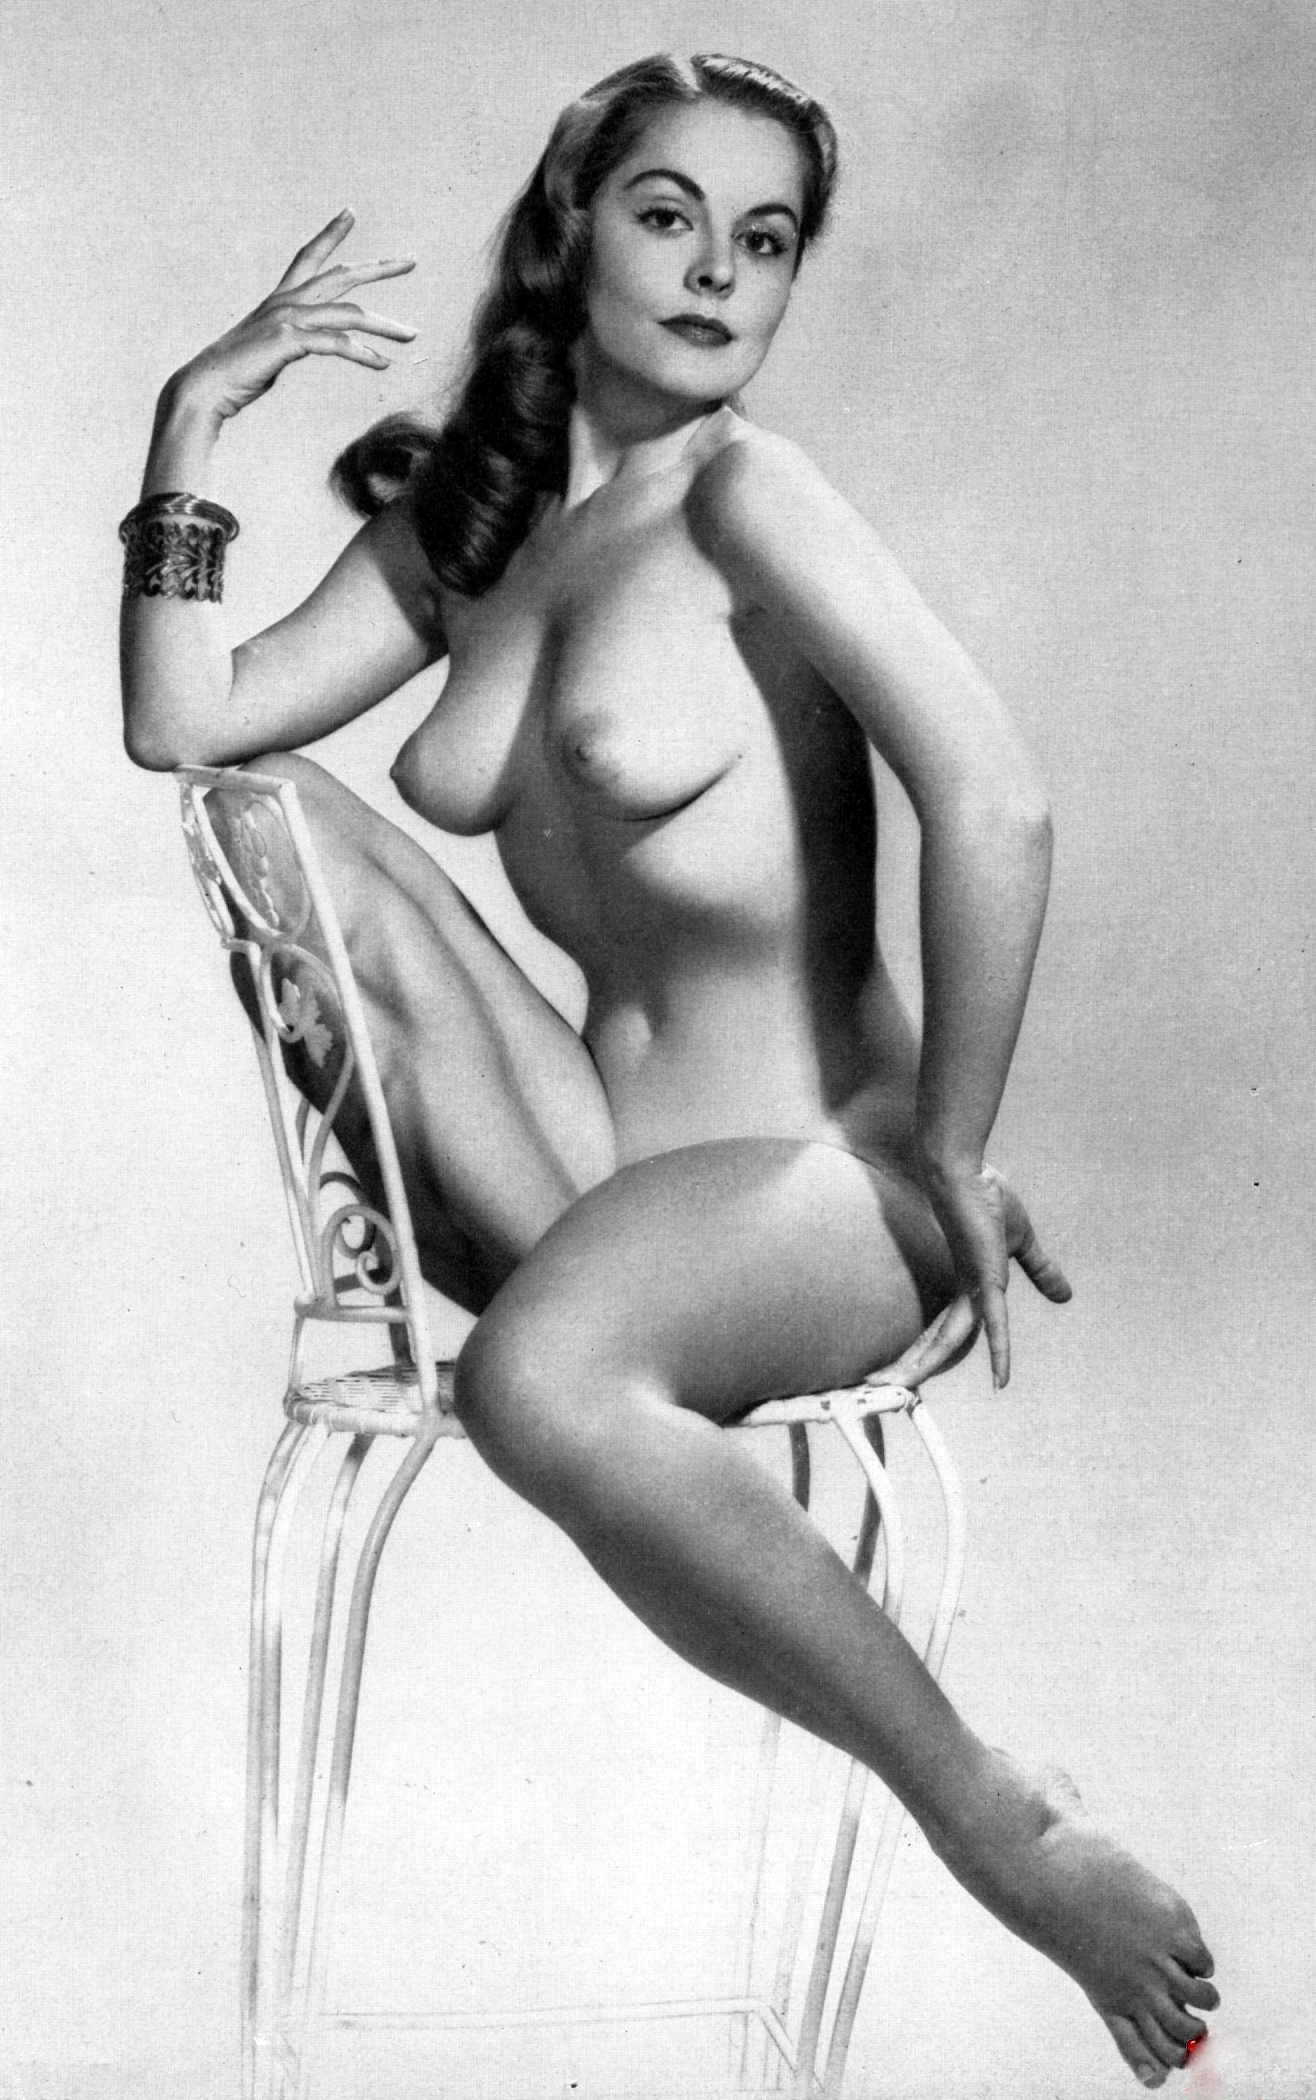 Erotic vintage pics would like